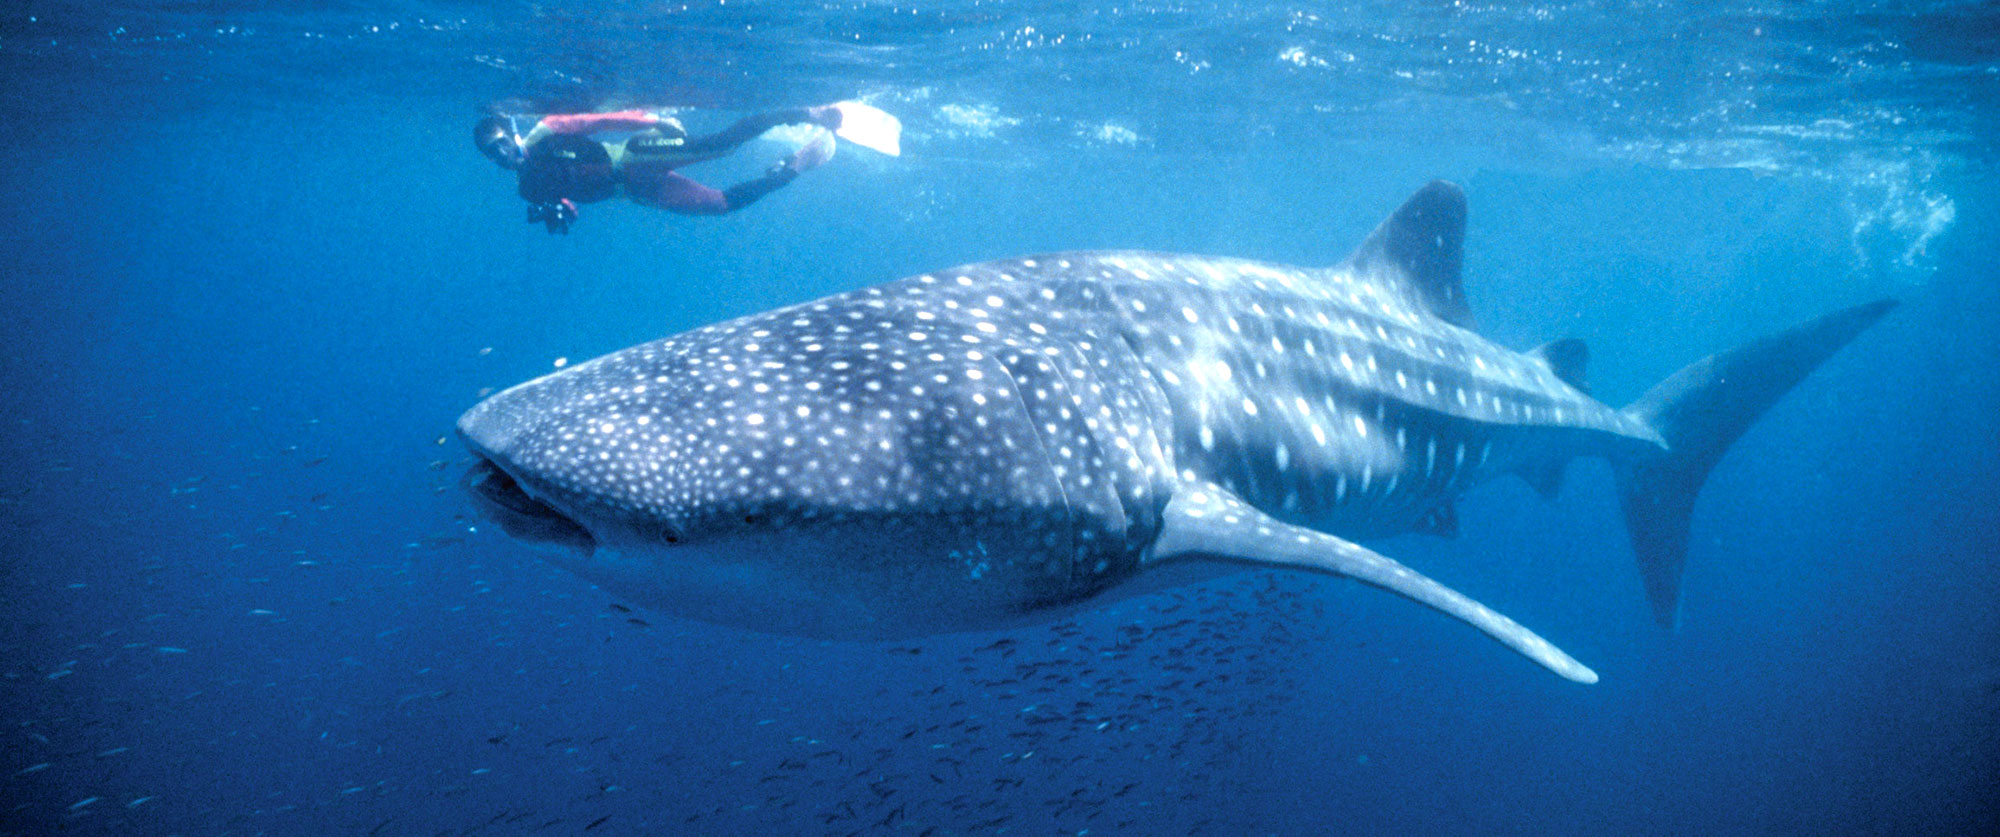 Australia Less Traveled - Swim with Whale Sharks